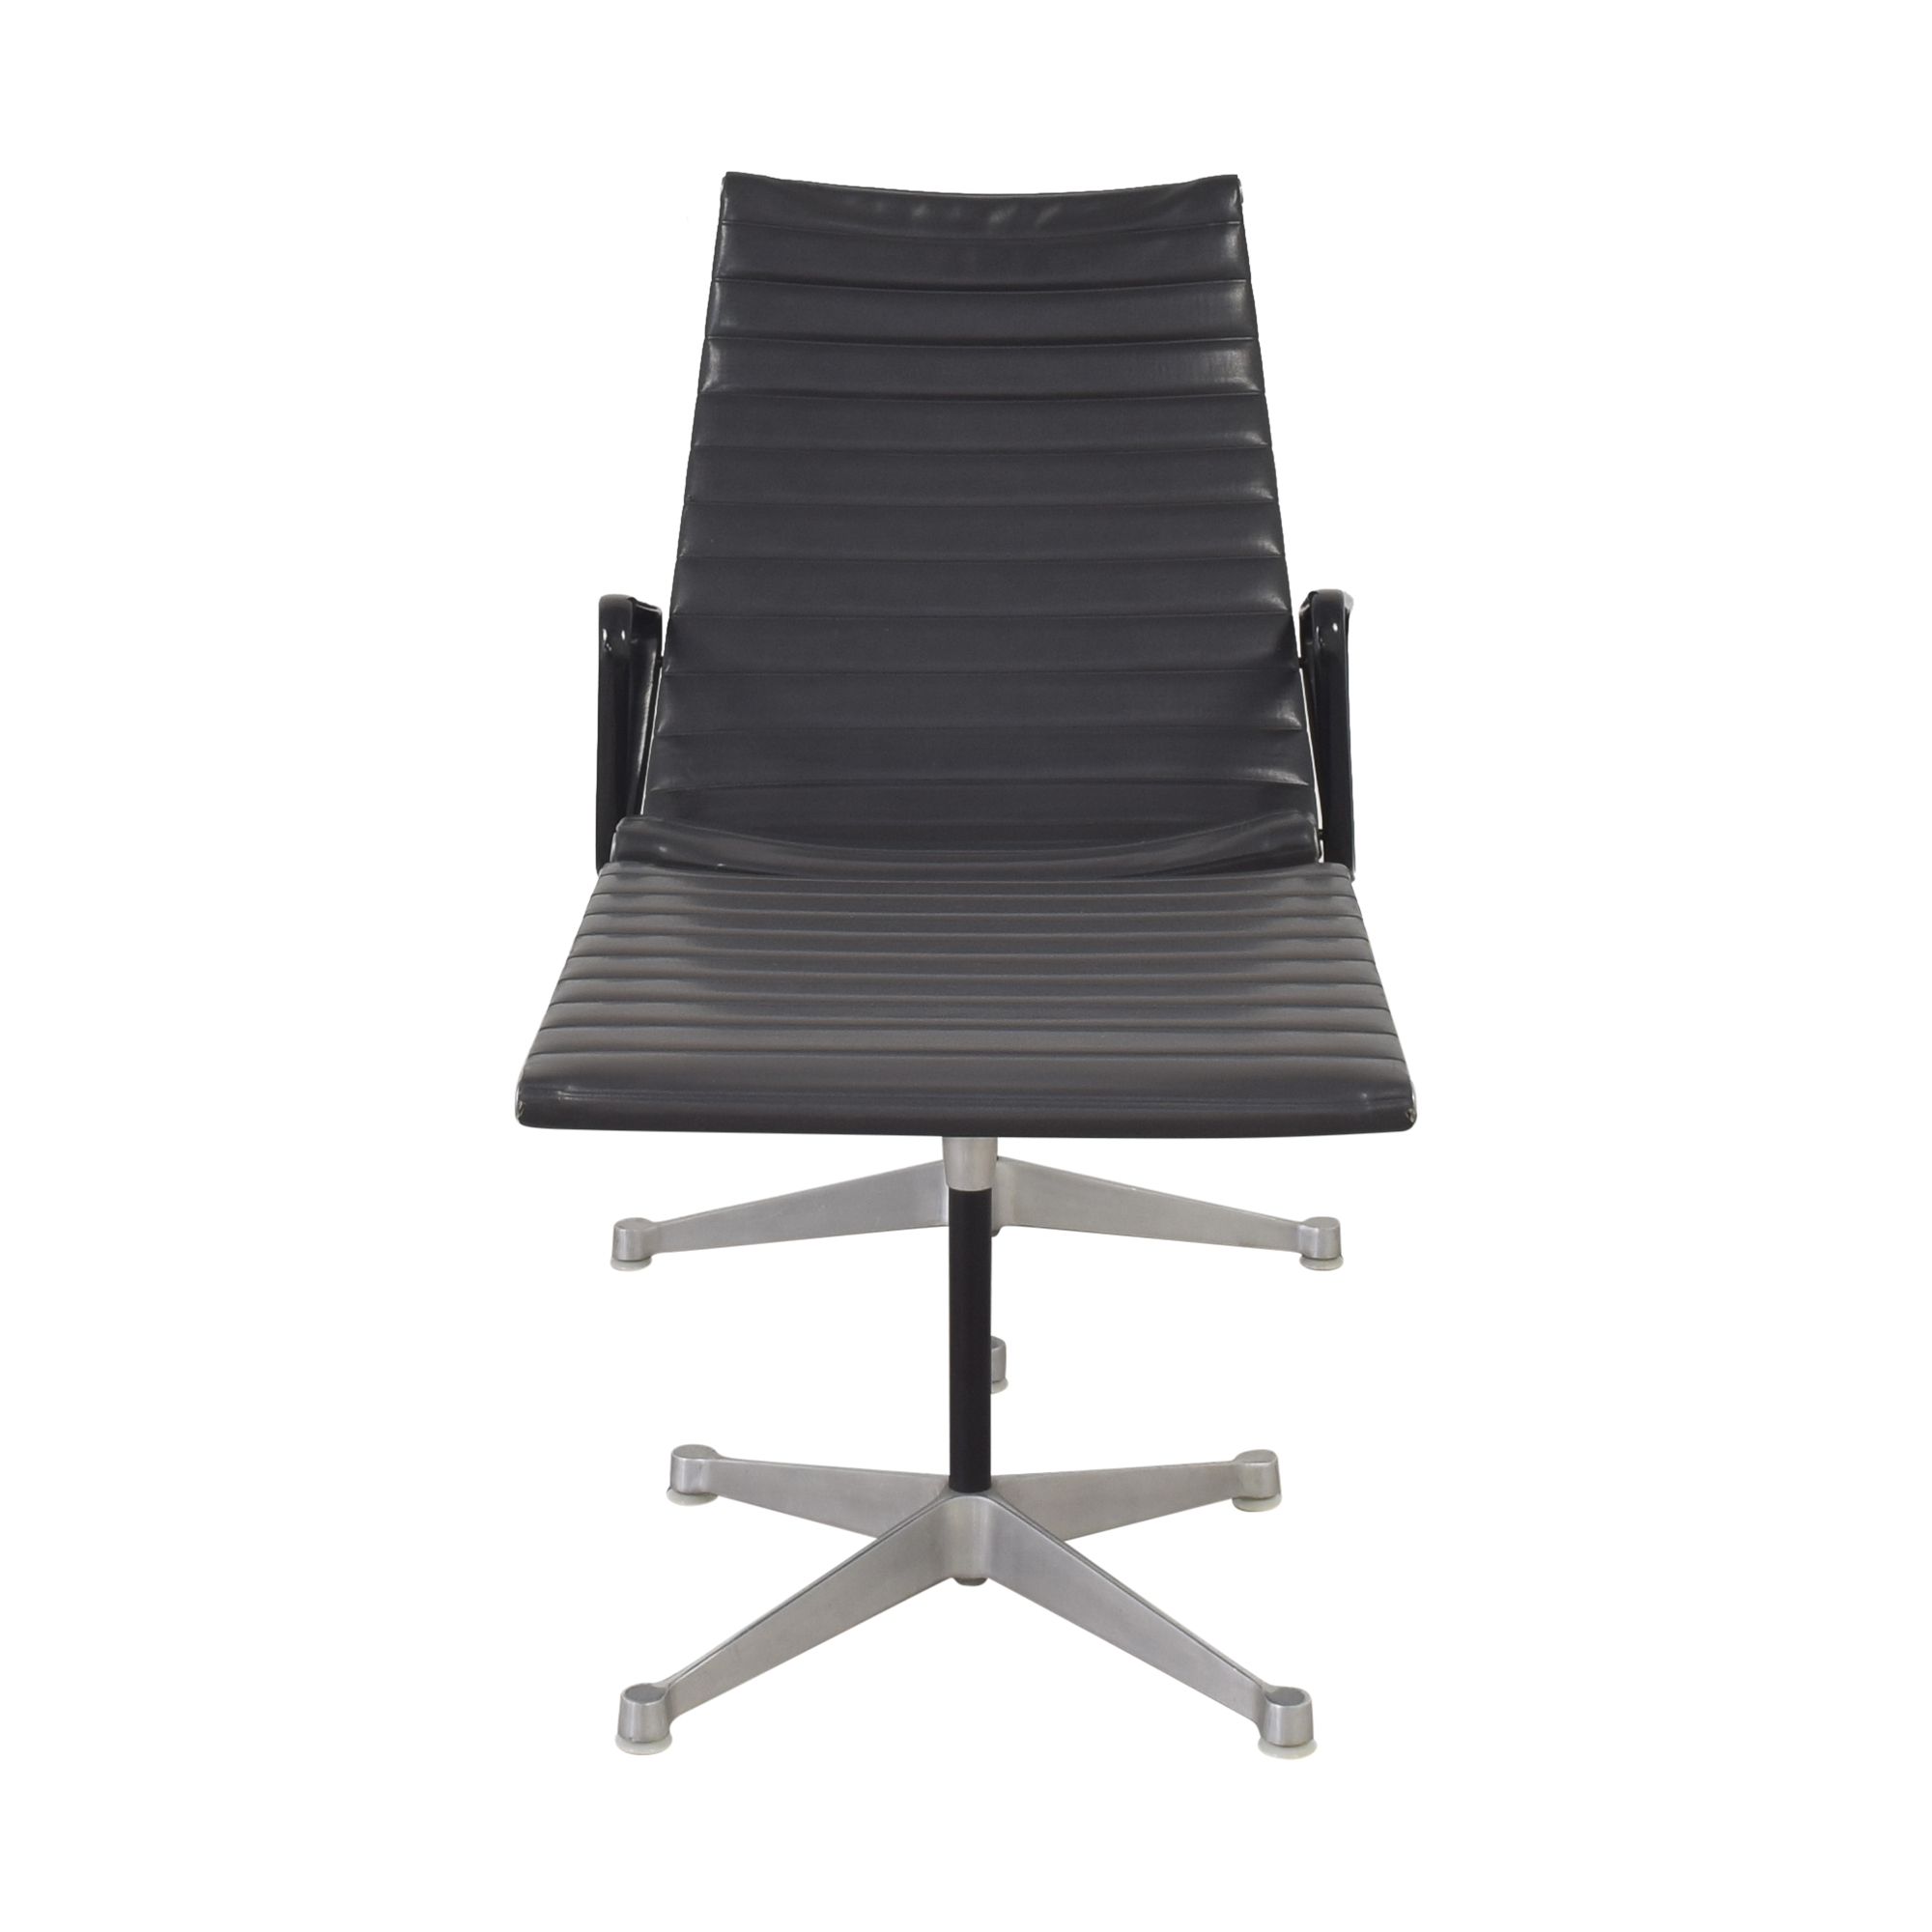 Herman Miller Herman Miller Eames Aluminum Group Lounge with Ottoman Accent Chairs